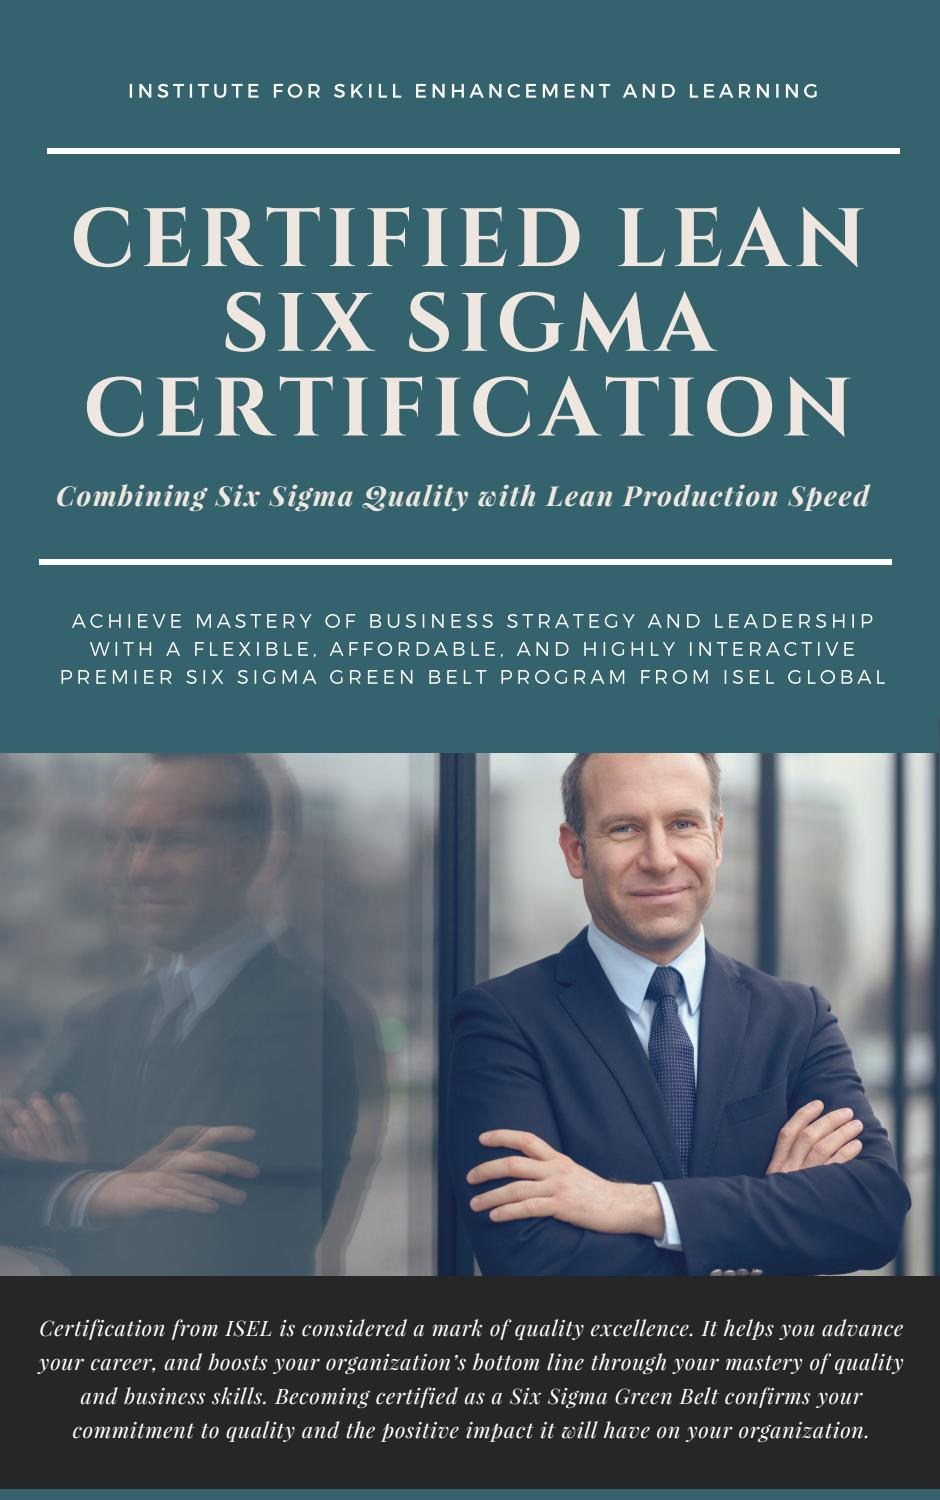 Lean Six Sigma For Managers By Iselglobal1 Issuu